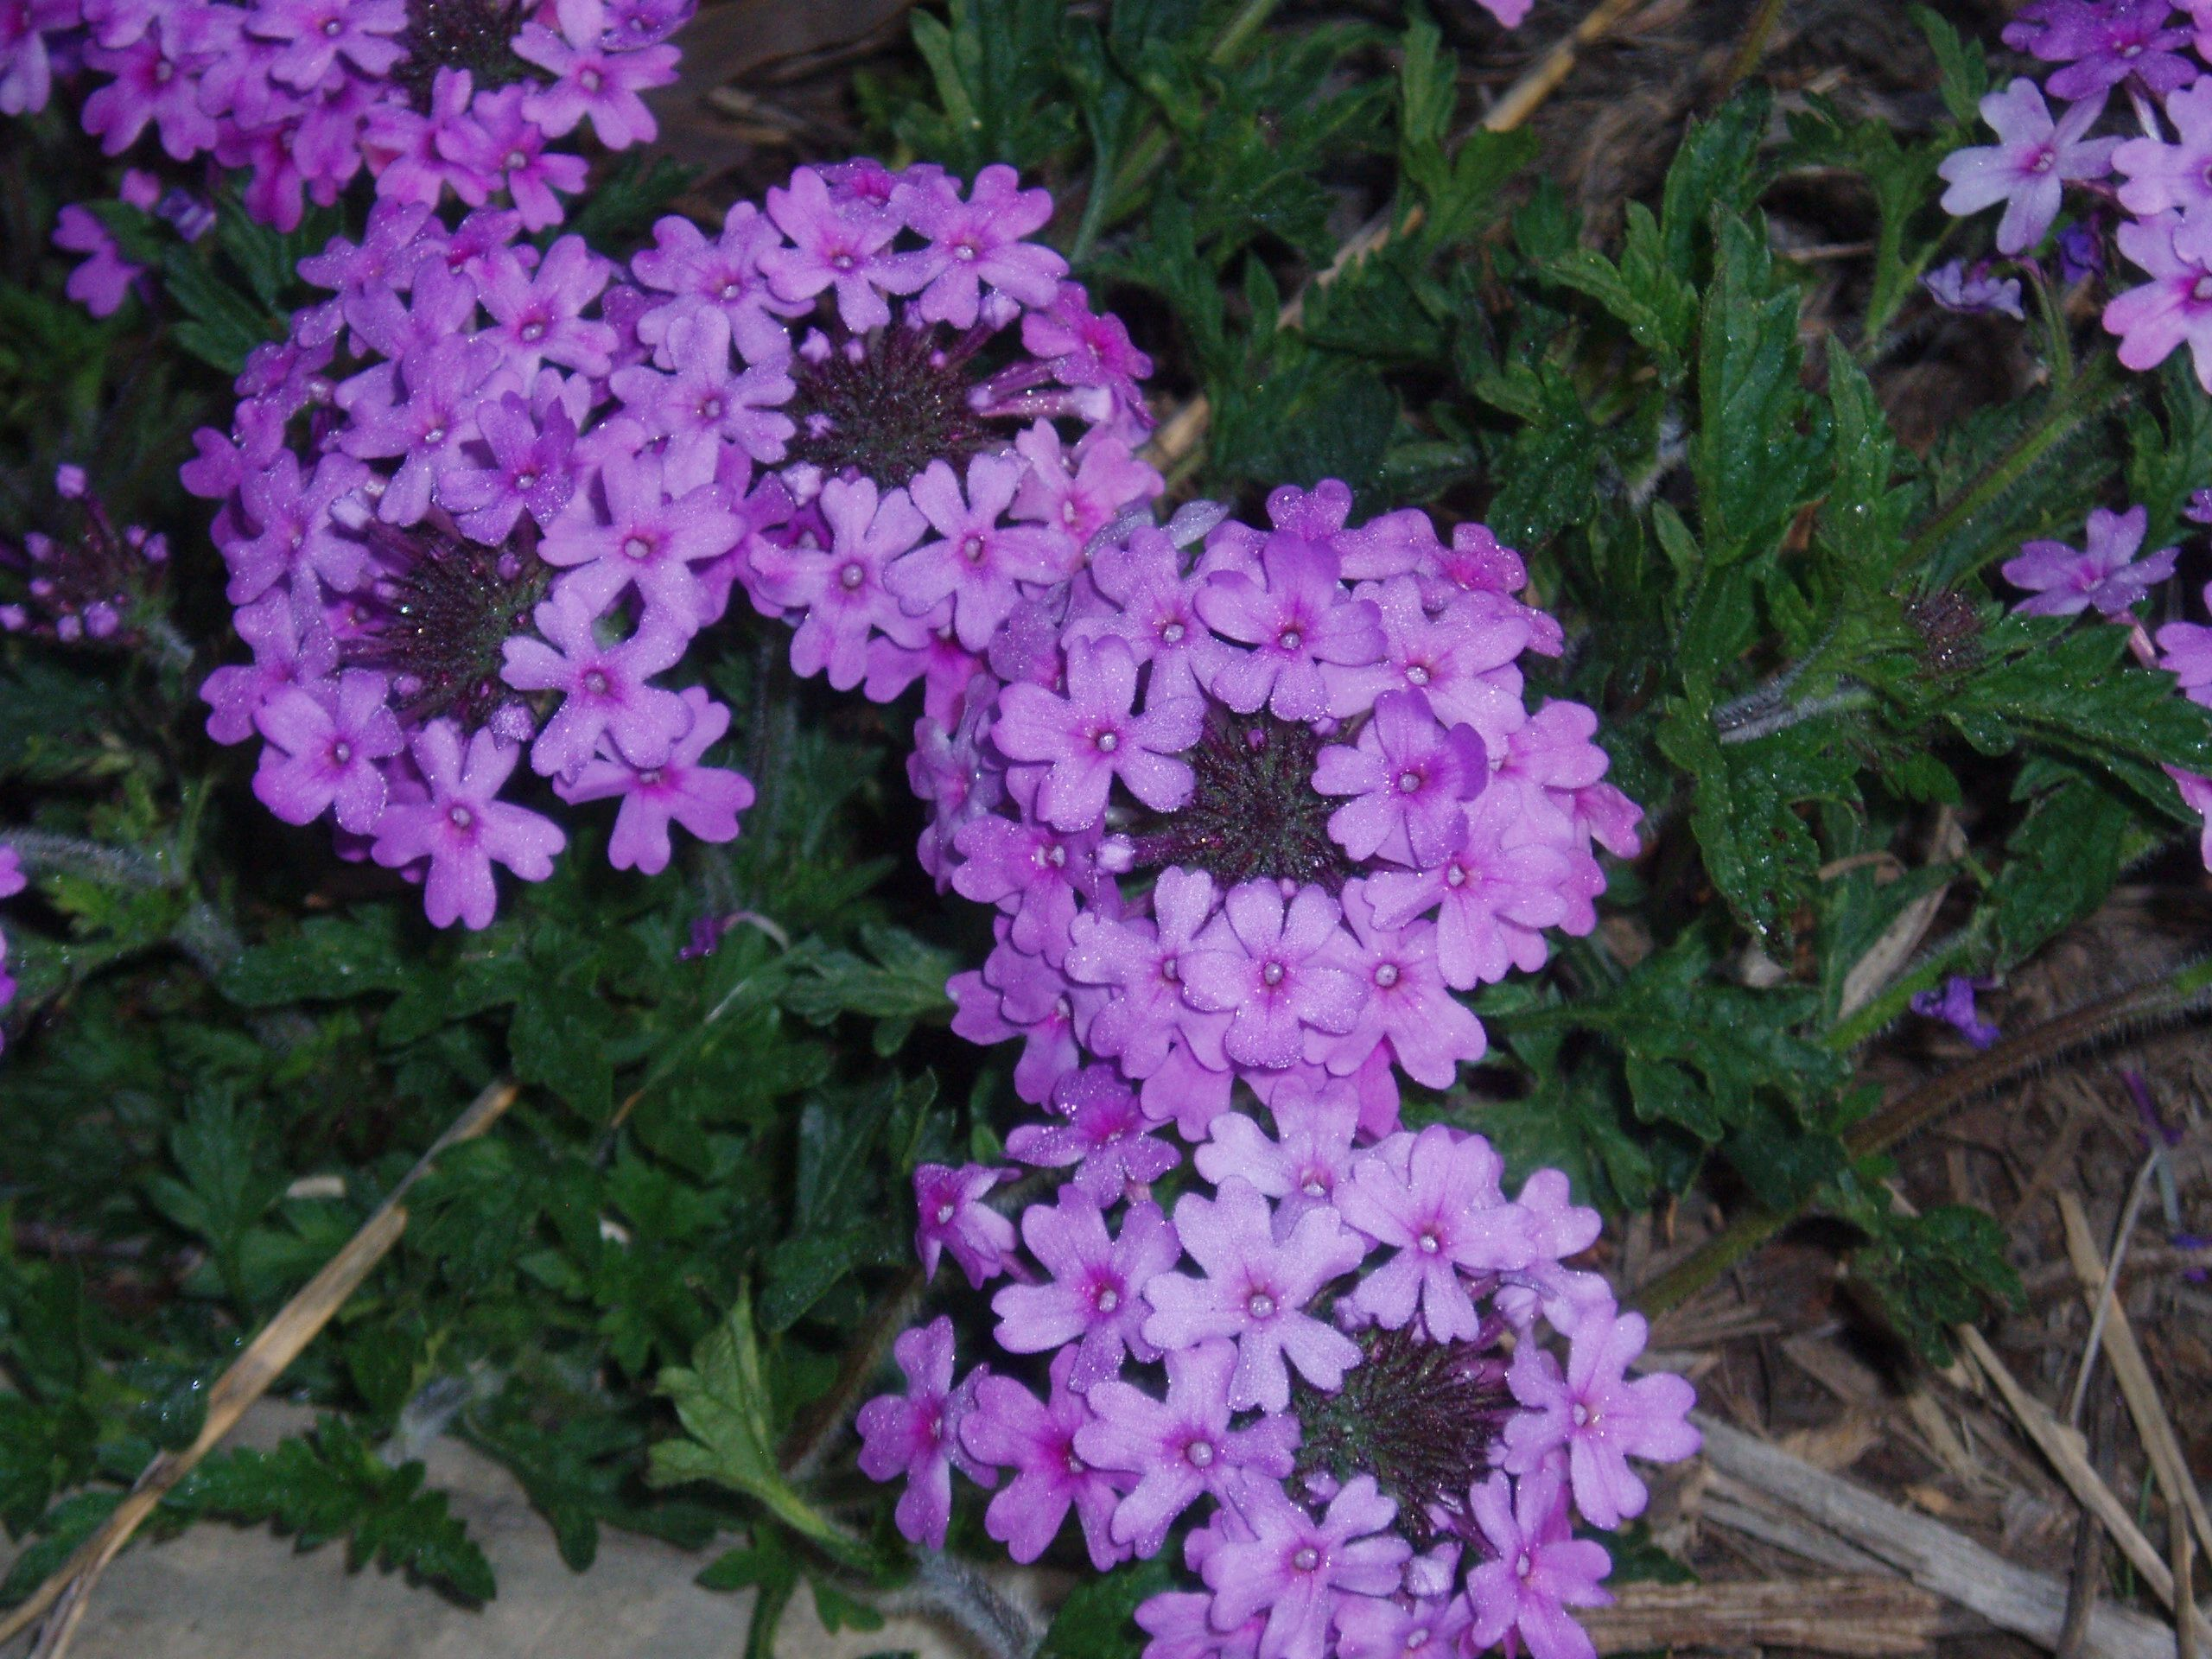 "{""blocks"":[{""key"":""3ii4c"",""text"":""Glandularia canaden Verbena canadensis Rose Vervain - potted plants email john@easywildflowers.com"",""type"":""unstyled"",""depth"":0,""inlineStyleRanges"":[],""entityRanges"":[],""data"":{}}],""entityMap"":{}}"